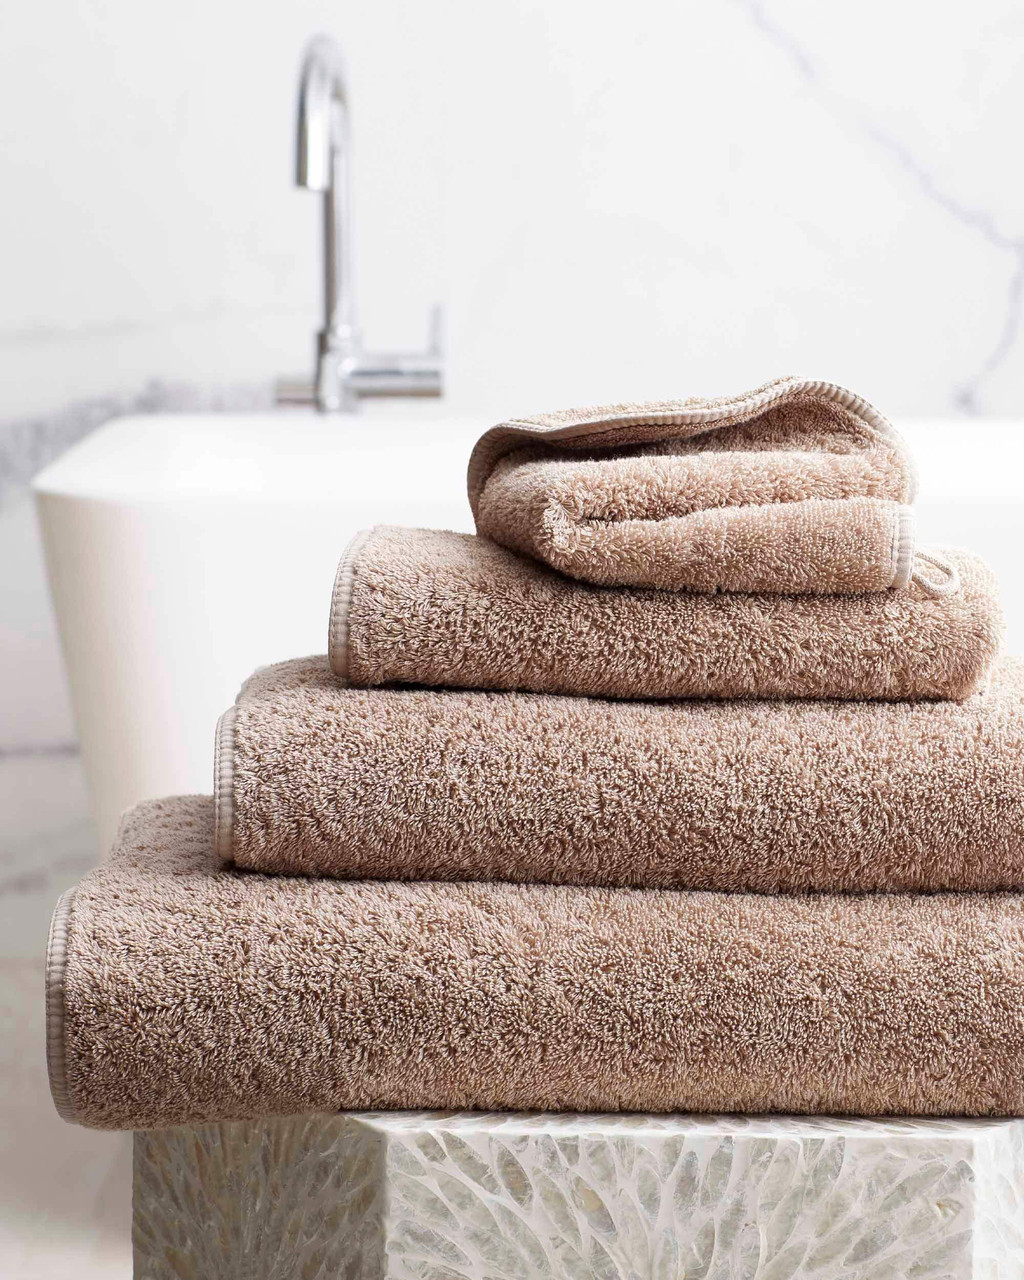 scandia down indulgence bath towel, scandia home indulgence bath towel, scandia down luxury bath collection, scandia home bath collection